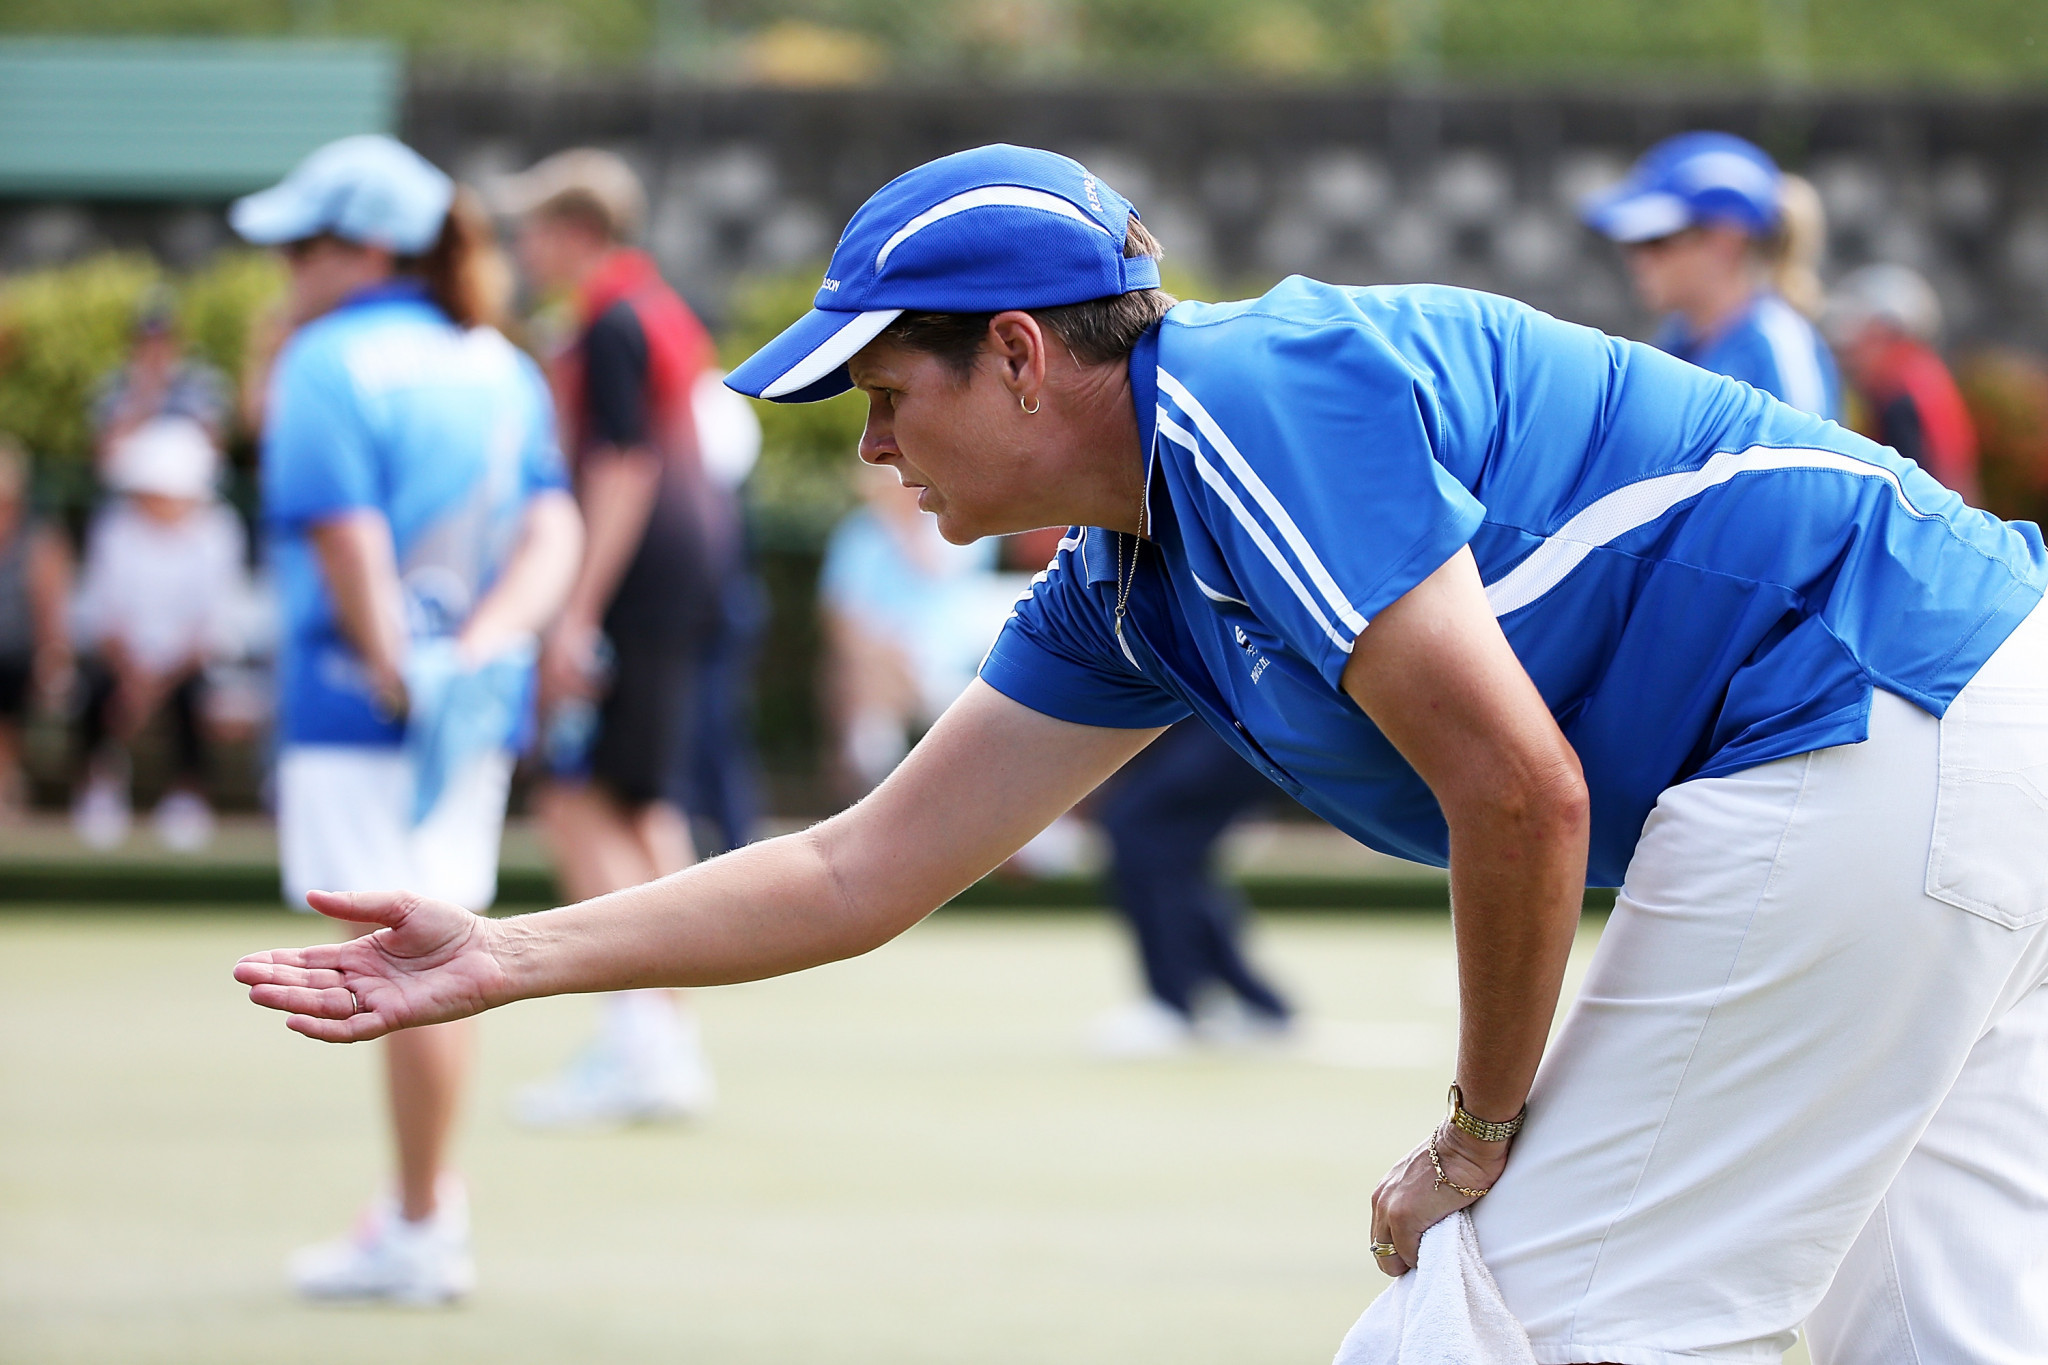 Double Commonwealth Games champion Edwards to face Anderson in Asia Pacific Bowls Championships